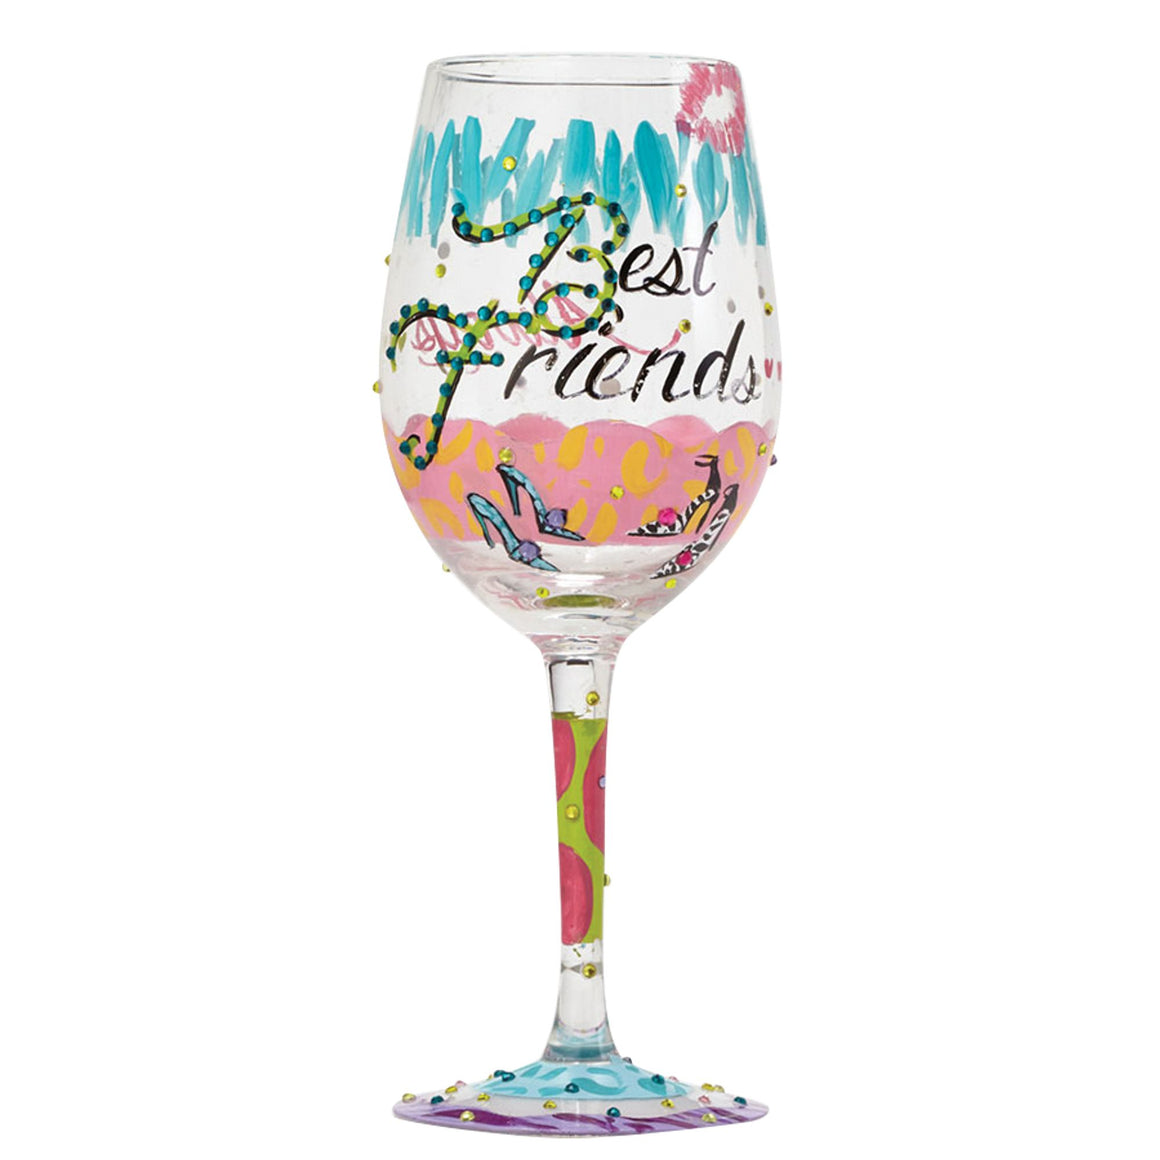 Best Friends Always Wine Glass by Lolita